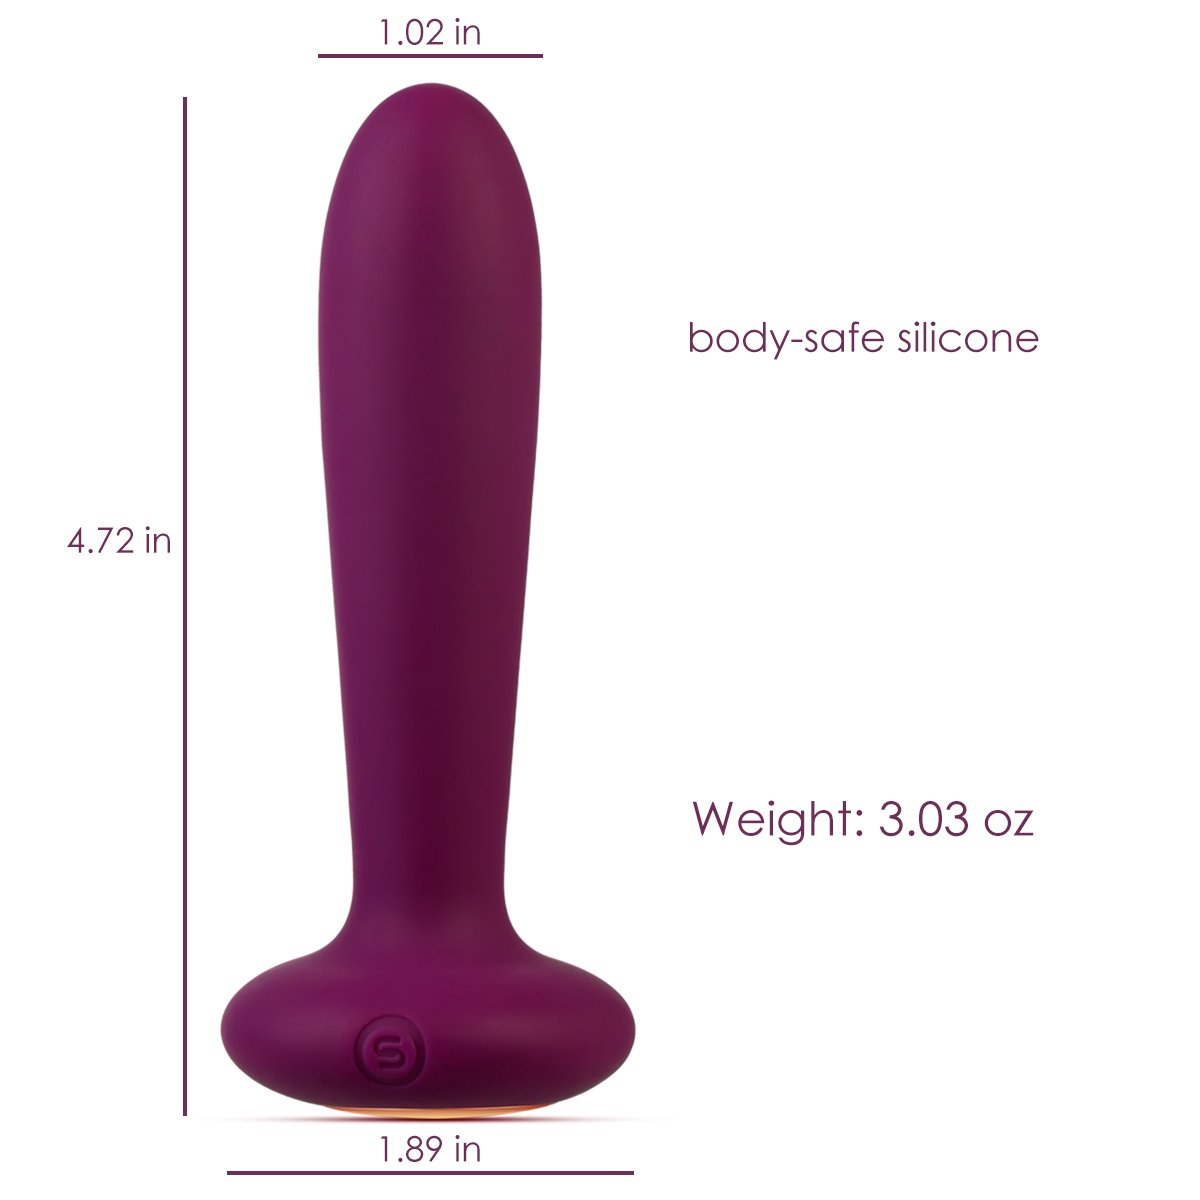 Vibrating Anal Plug and Prostate Massager - Rechargeable & Waterproof Anal Sex Toys - Body Safe Silicone - 5 Stimulation Modes Vibrator - for Men, Women or Couples (Violet)